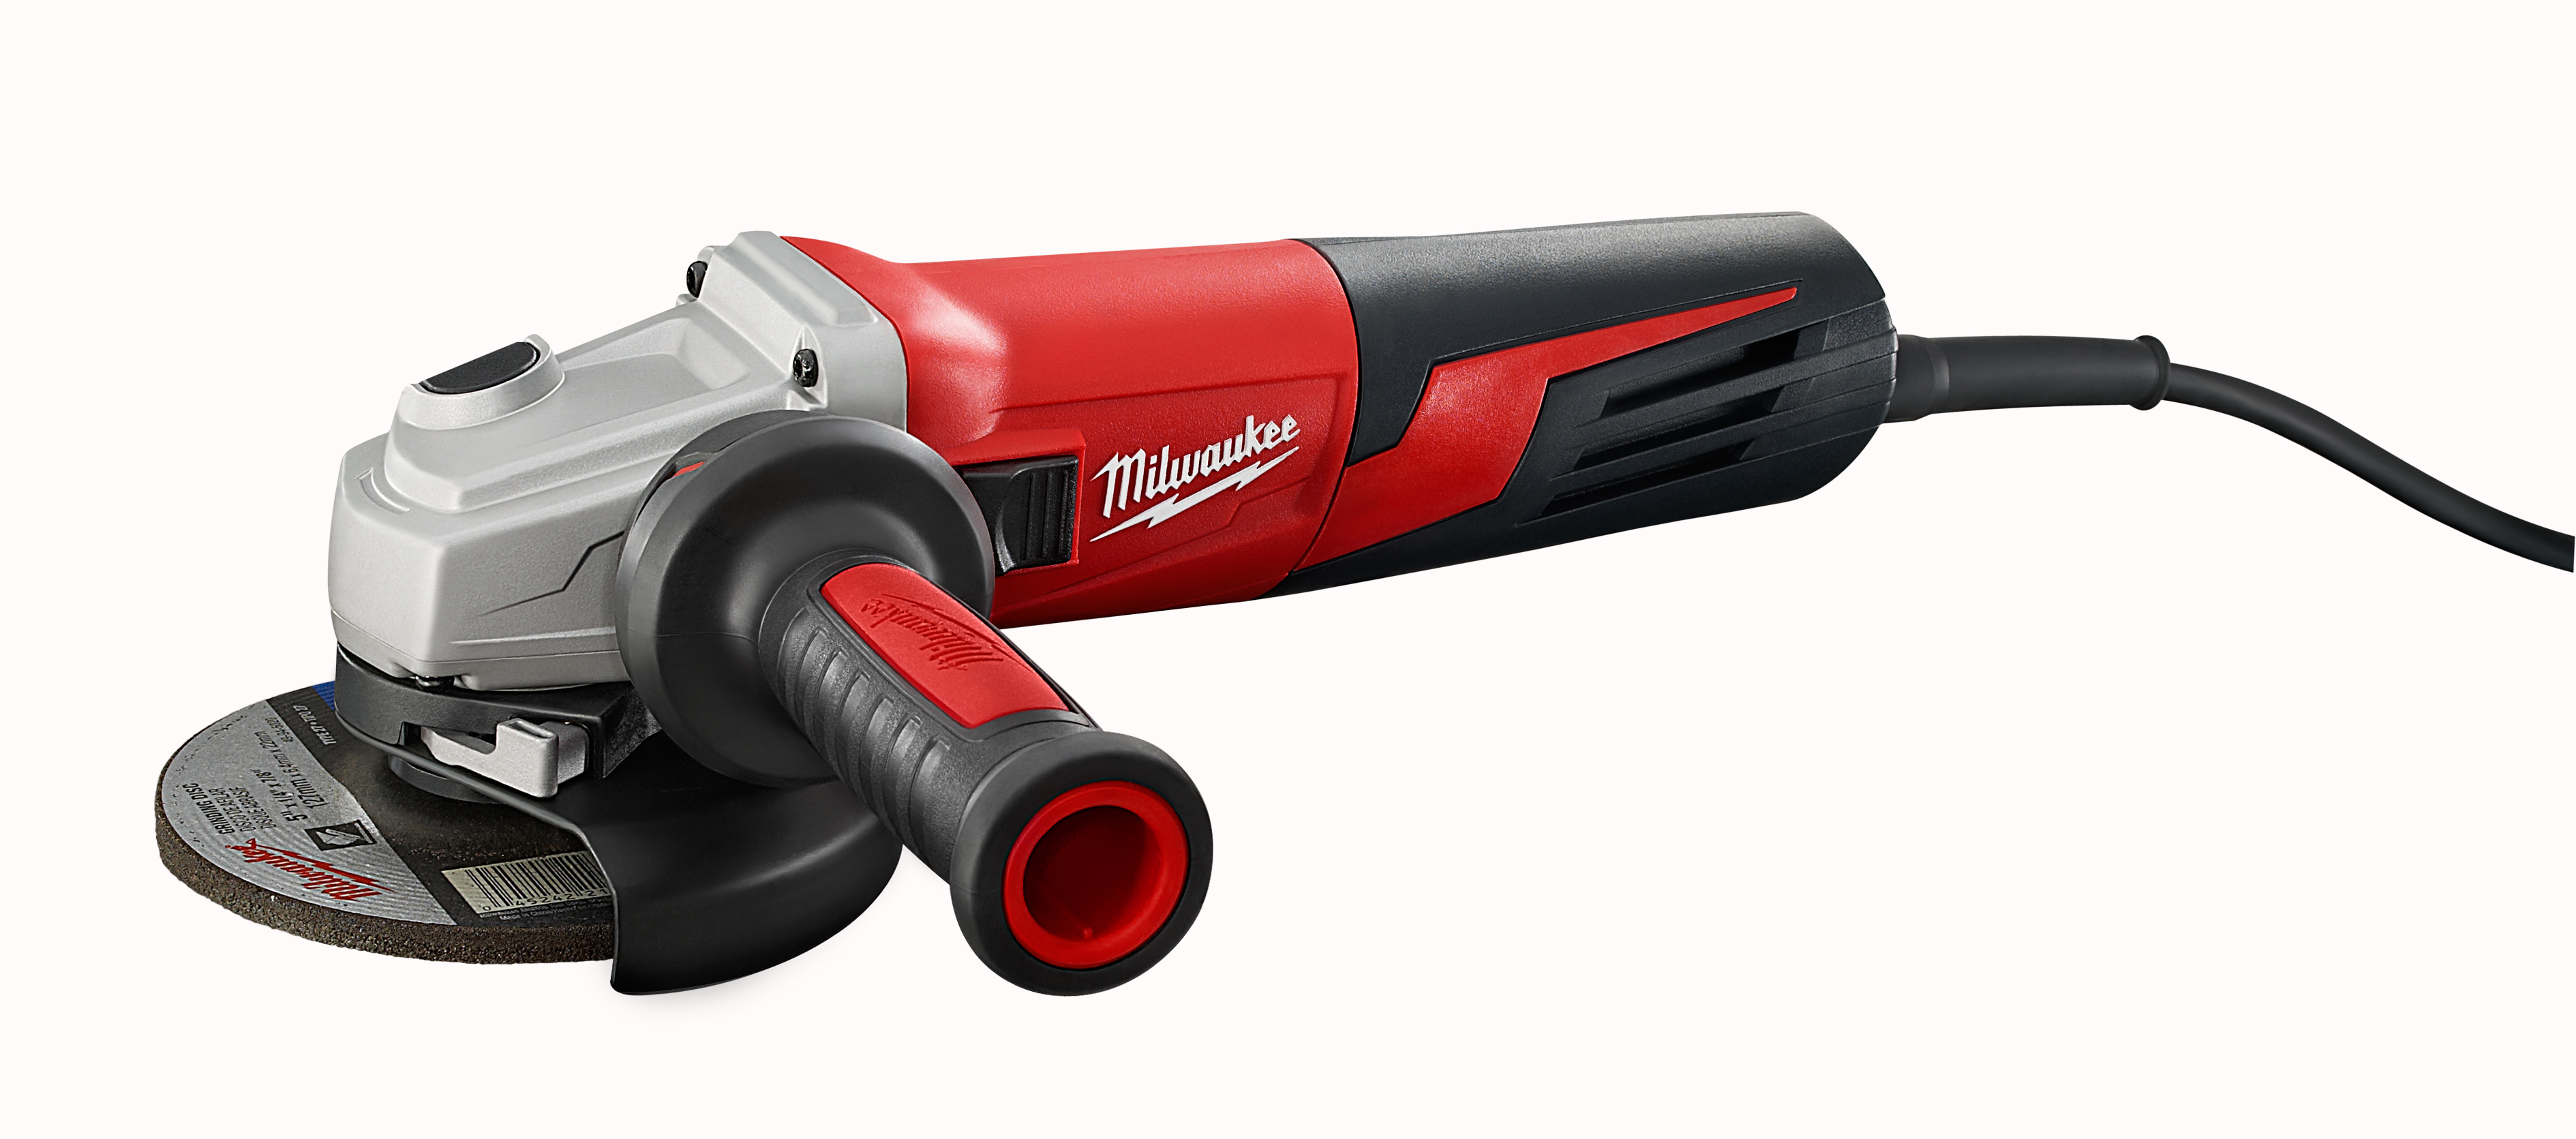 Milwaukee® 6117-33 Double Insulated Small Angle Grinder, 5 in Dia Wheel, 5/8-11 Arbor/Shank, 120 VAC, Black/Red